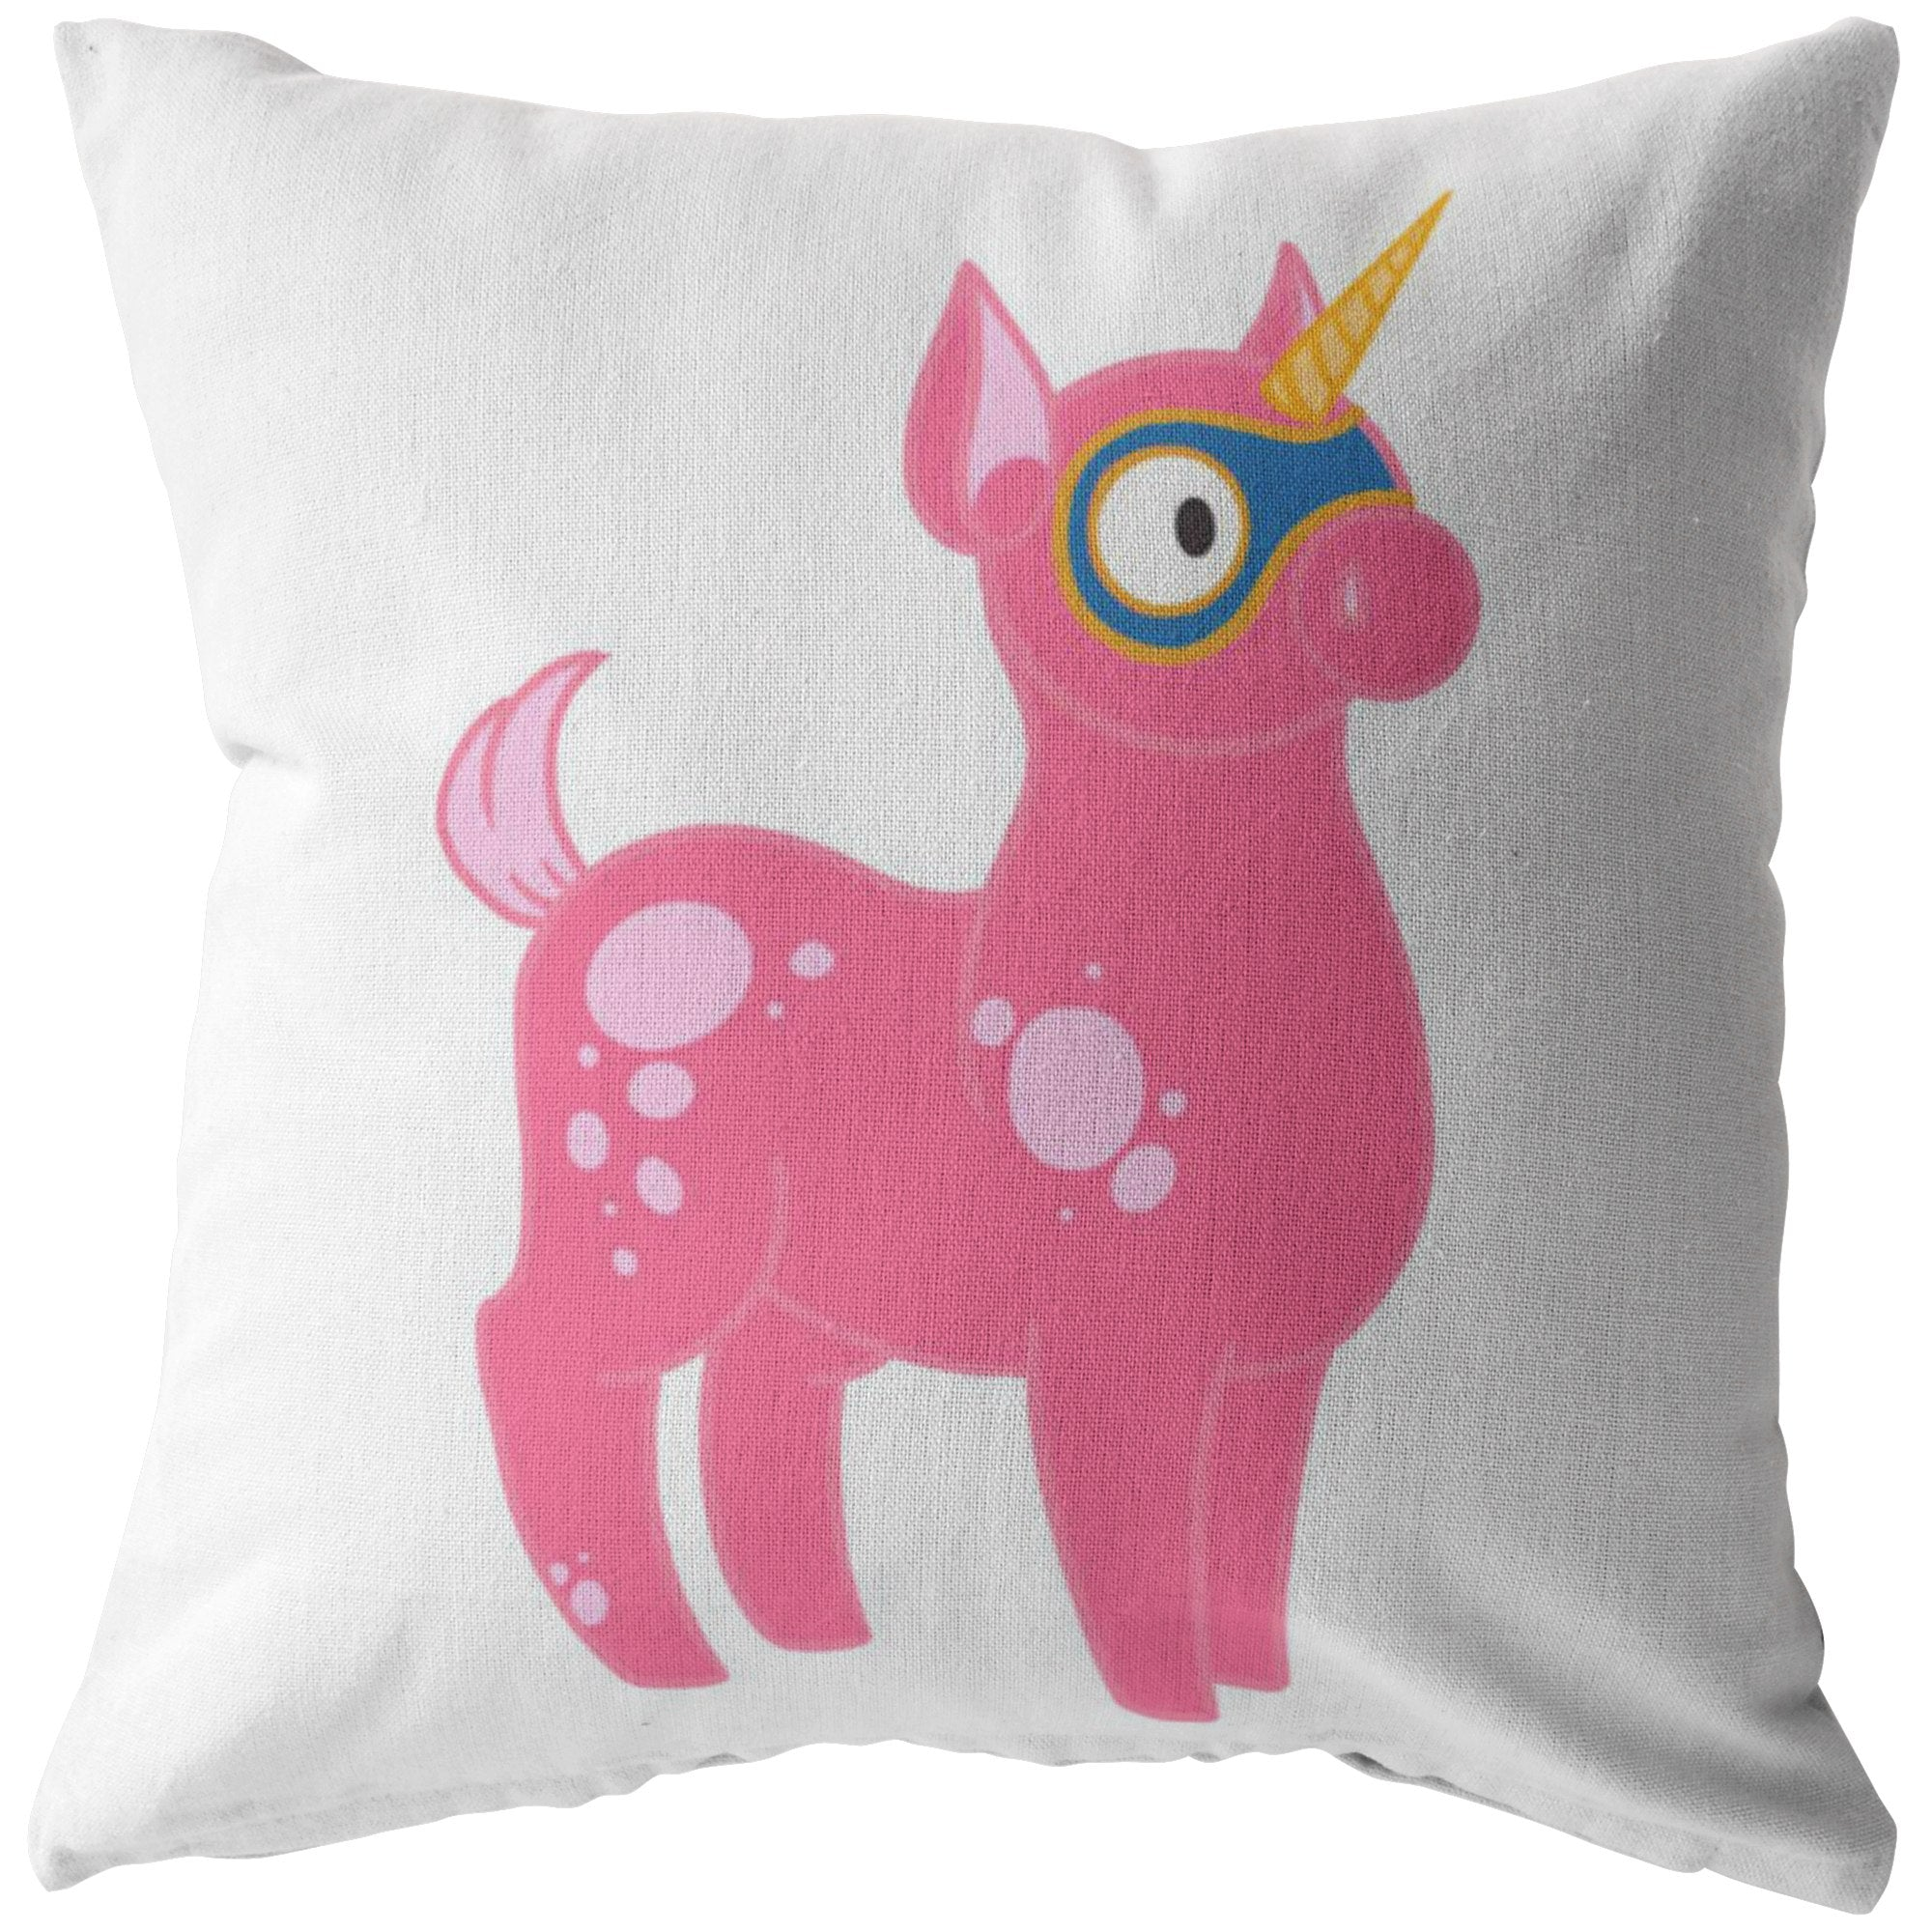 Misdiagnosis Monster Pillow